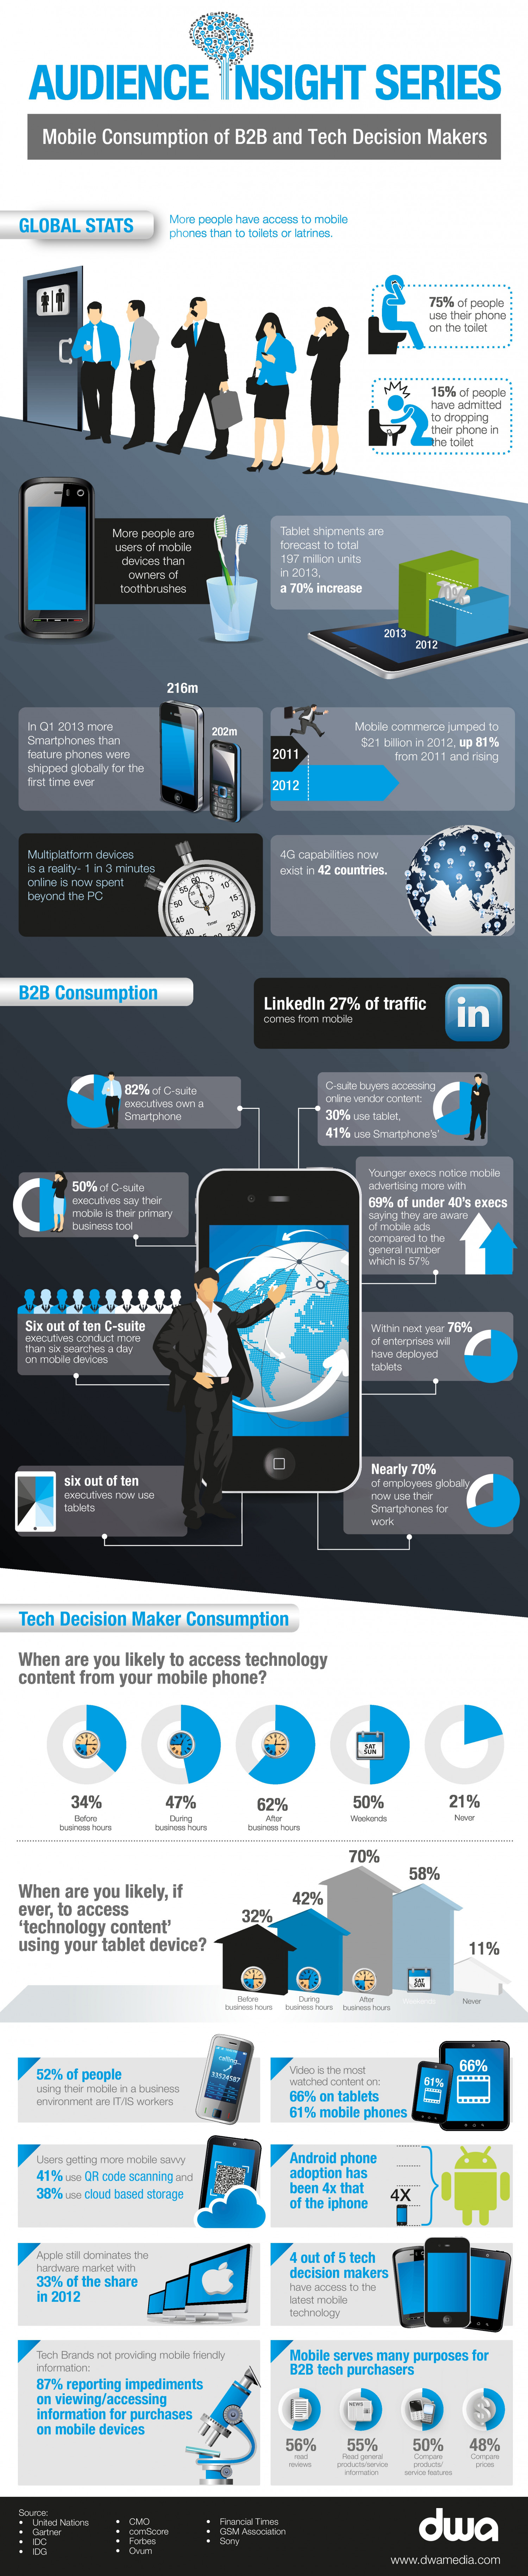 Mobile Consumption of B2B and Tech Decision Makers Infographic